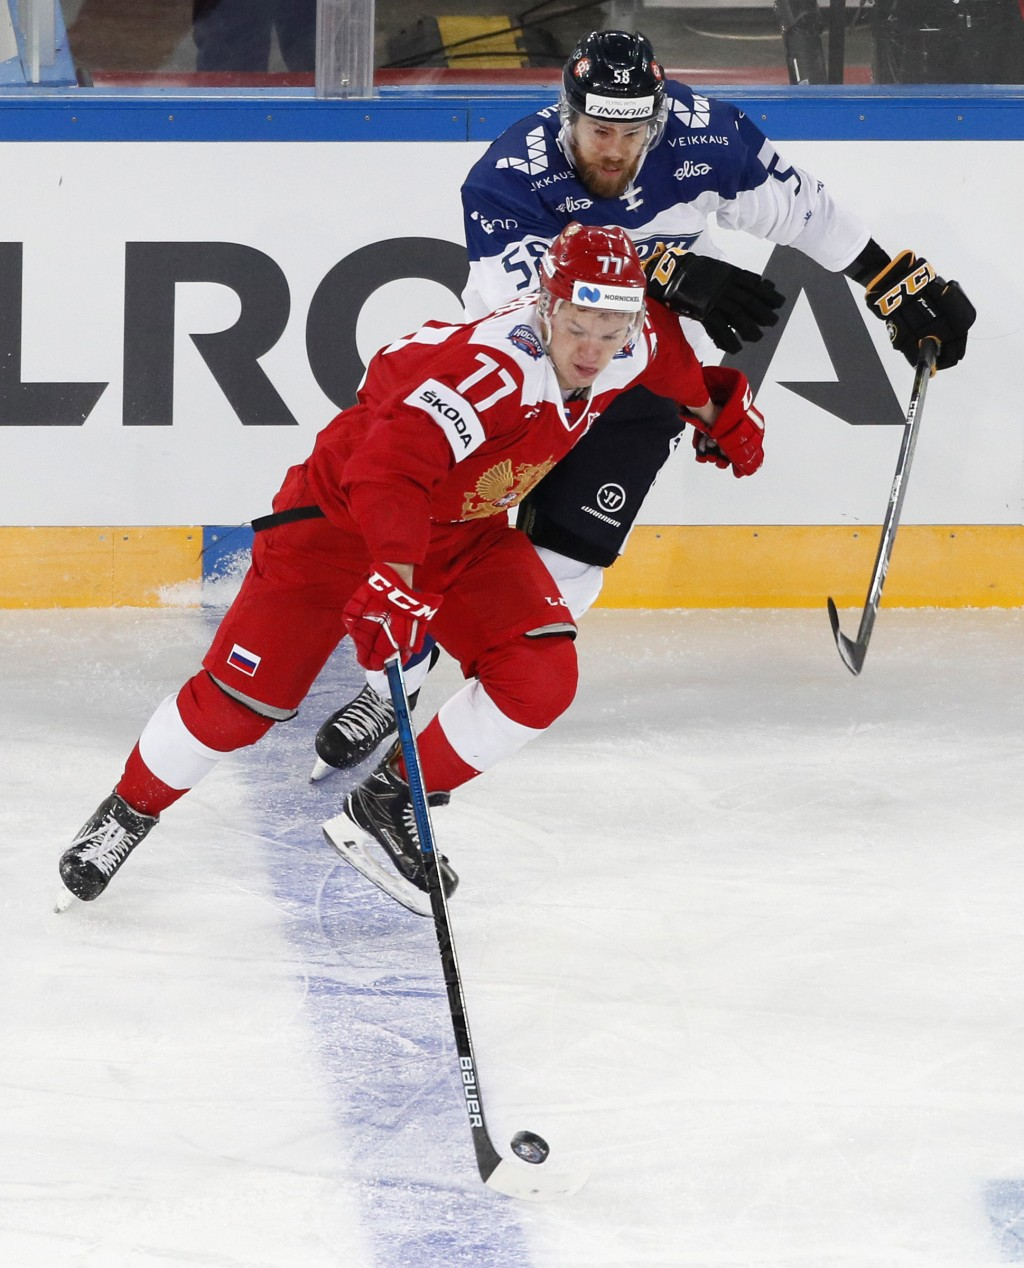 FILE - In this Sunday, Dec. 16, 2018, file photo, Russia's Kirill Kaprizov (77) battles Finland's Jani Hakanpaa (58) during the Channel One Cup ice ho...